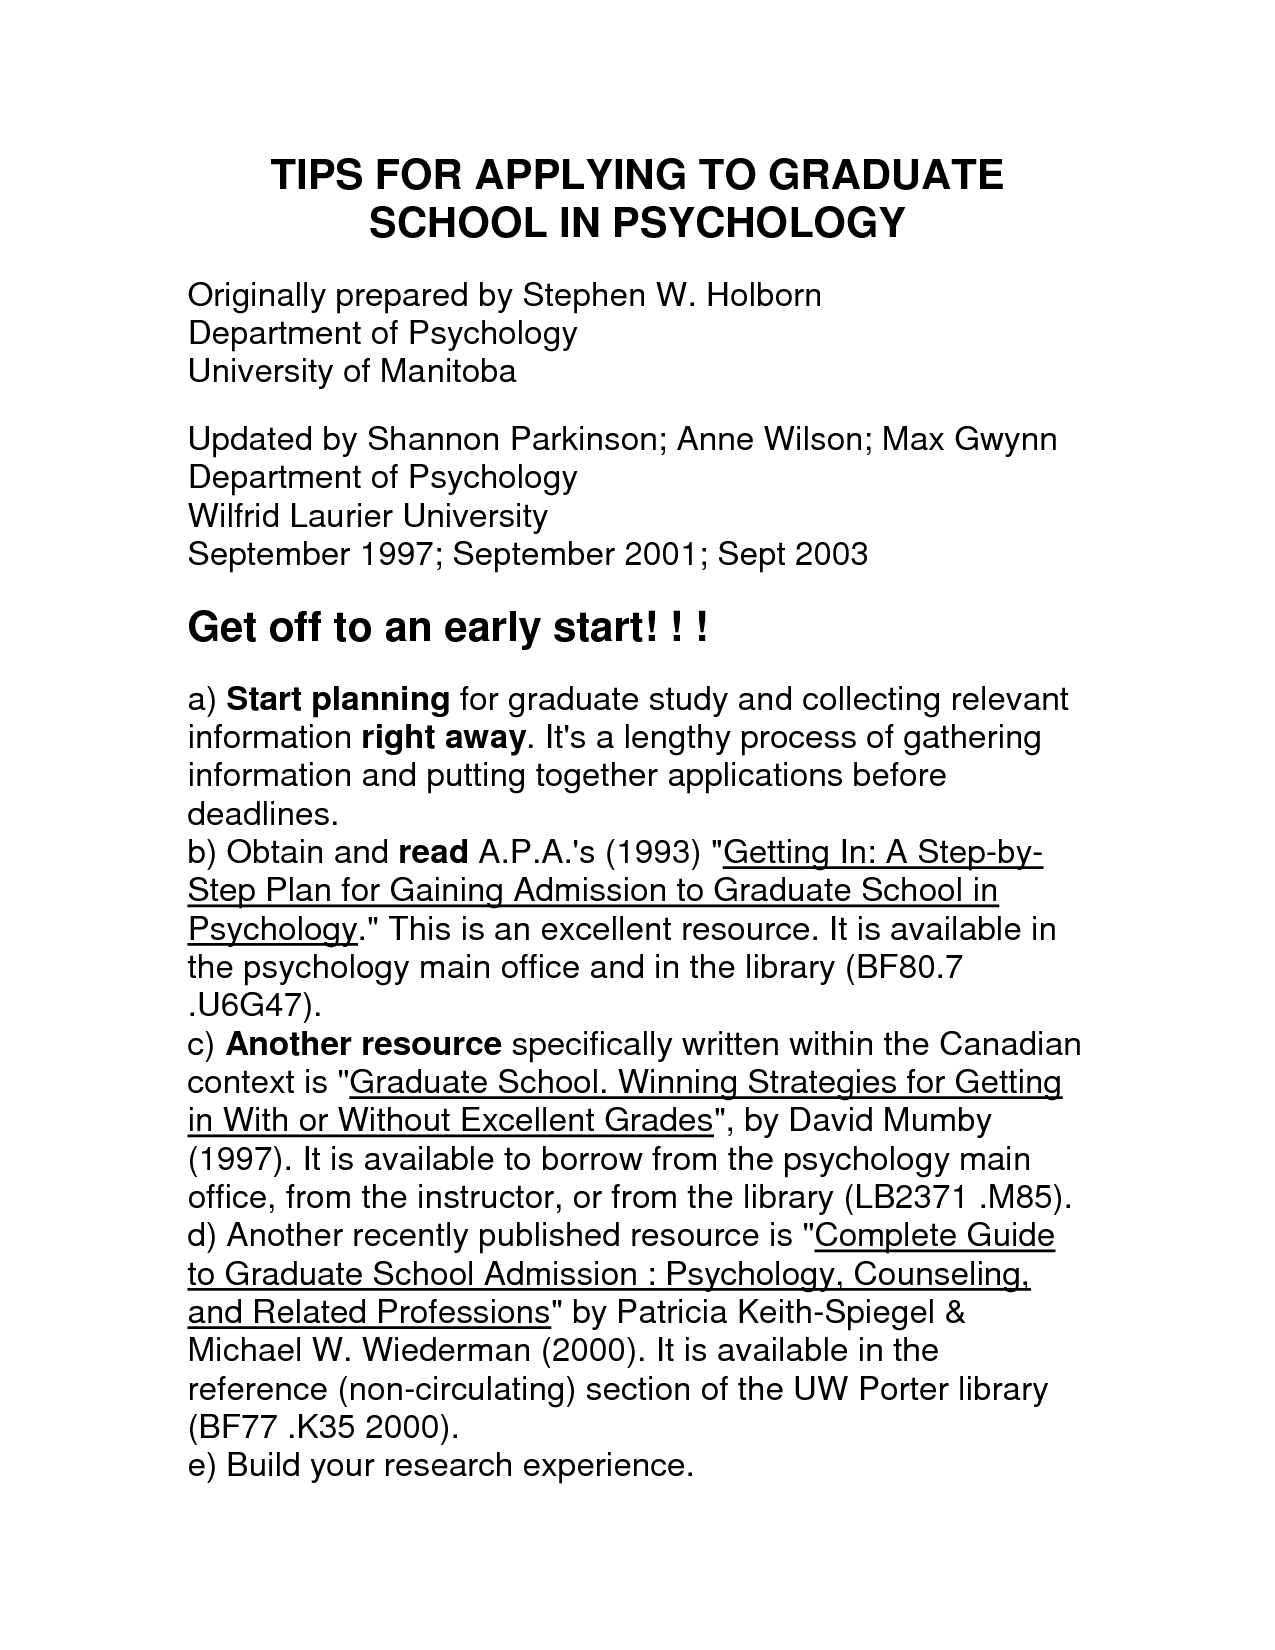 Graduate School Resume Psychology Graduate School Resume Http Www